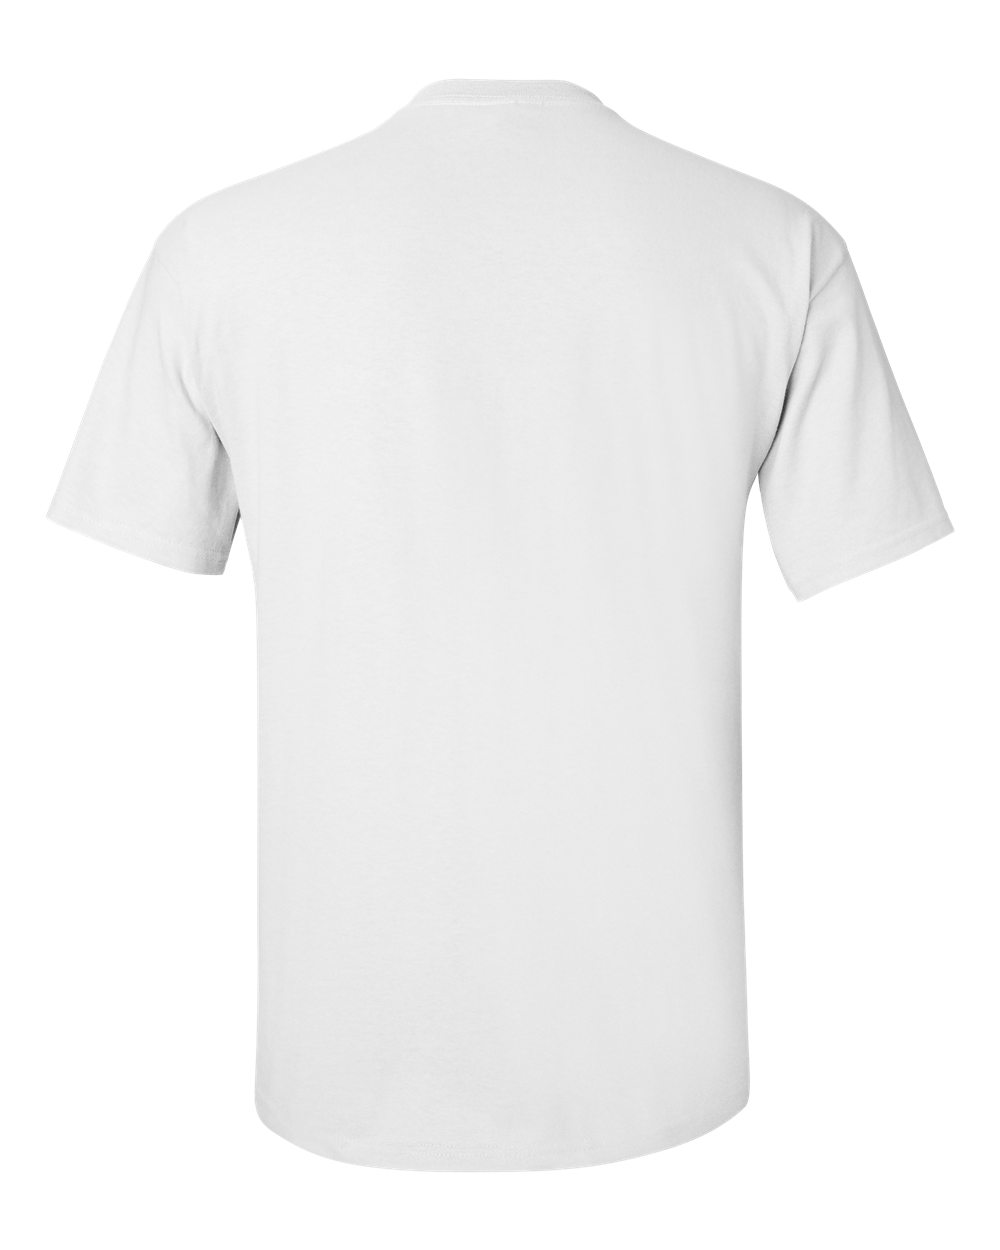 250 00 50 custom printed white tees description 50 white t shirts